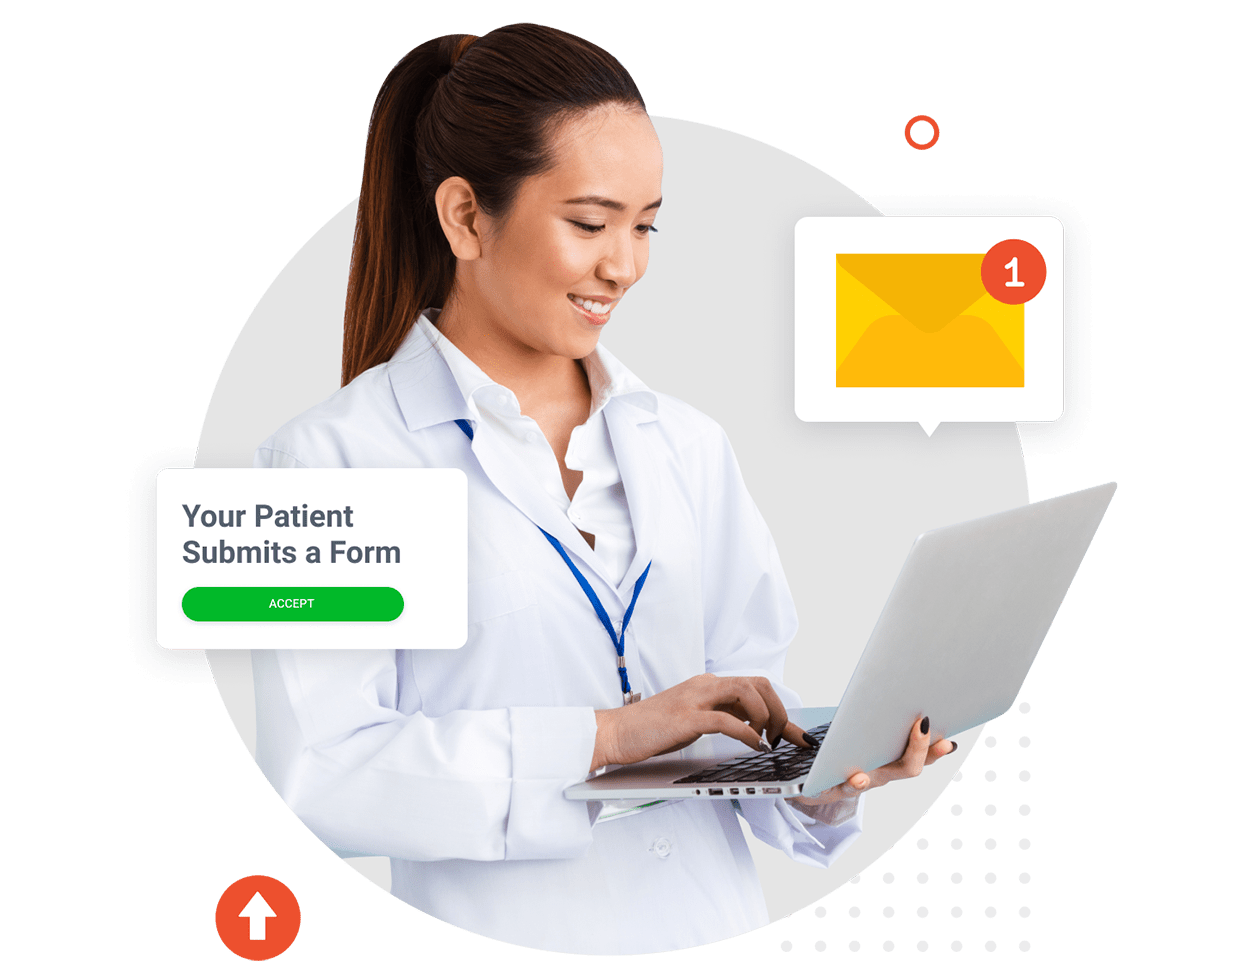 HIPAA Compliant Form Submissions